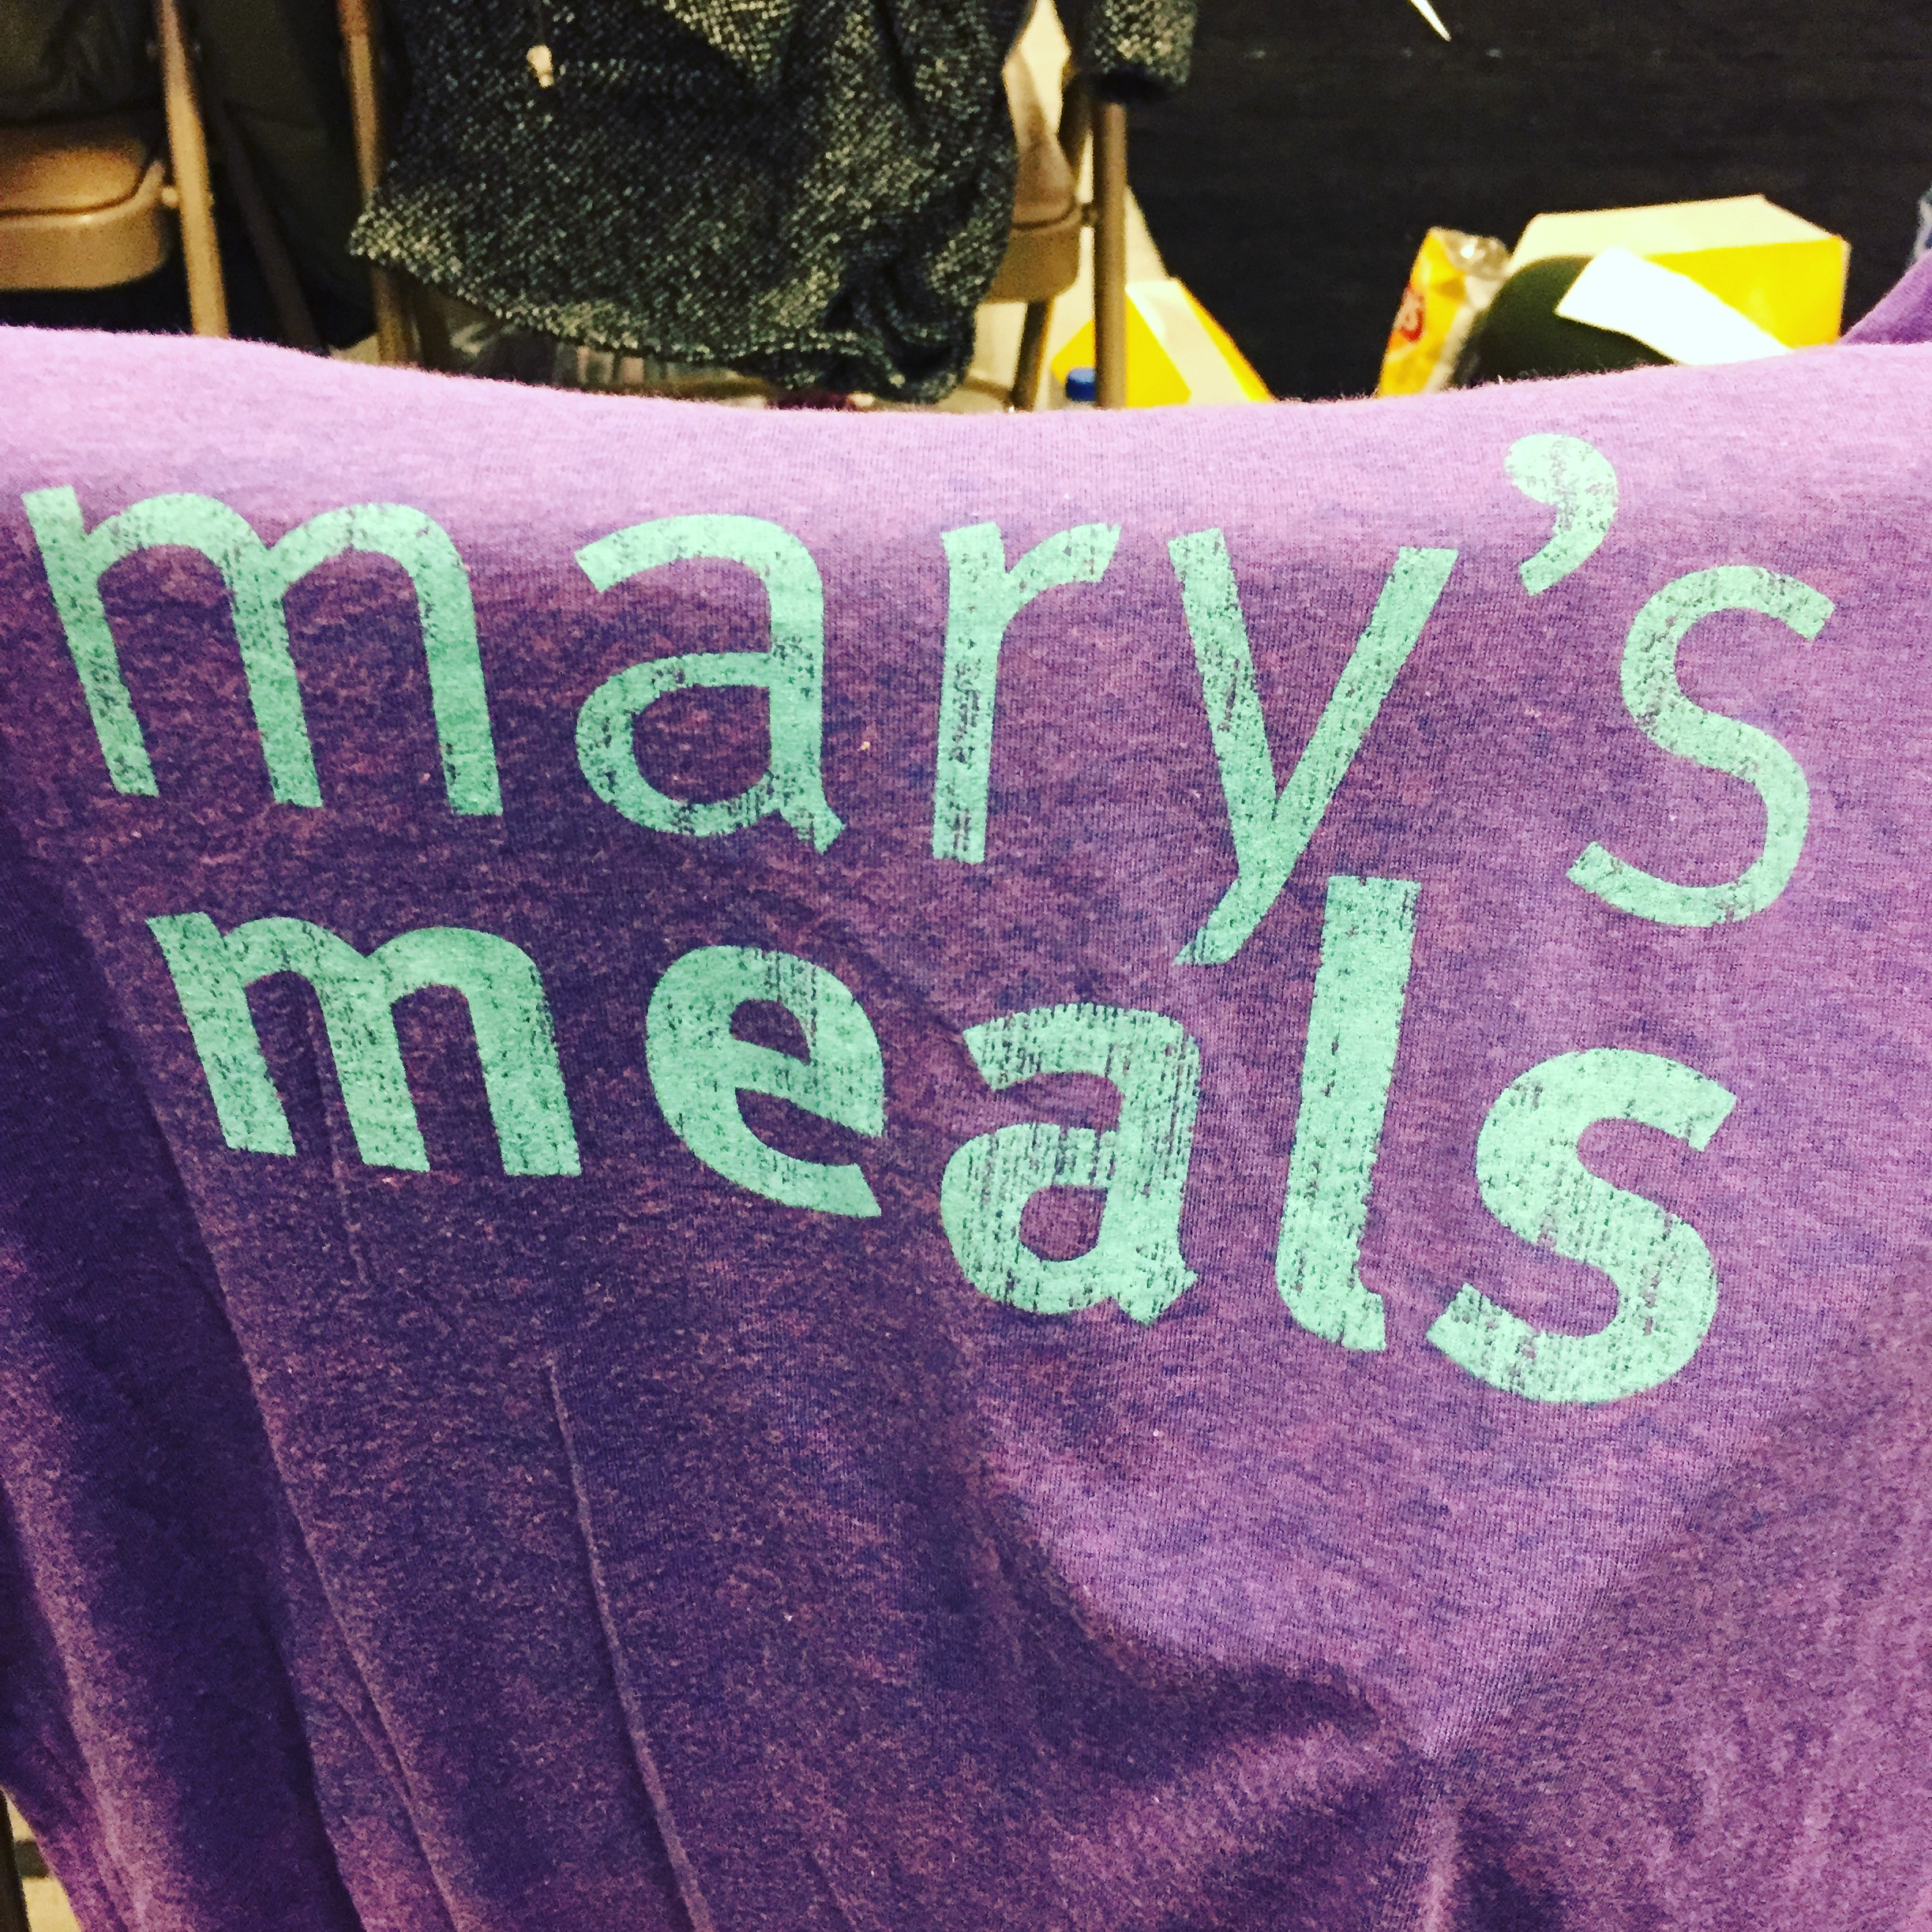 One of the Mary's Meals t-shirts I picked up at the Columbus Catholic Women's Conference last weekend.